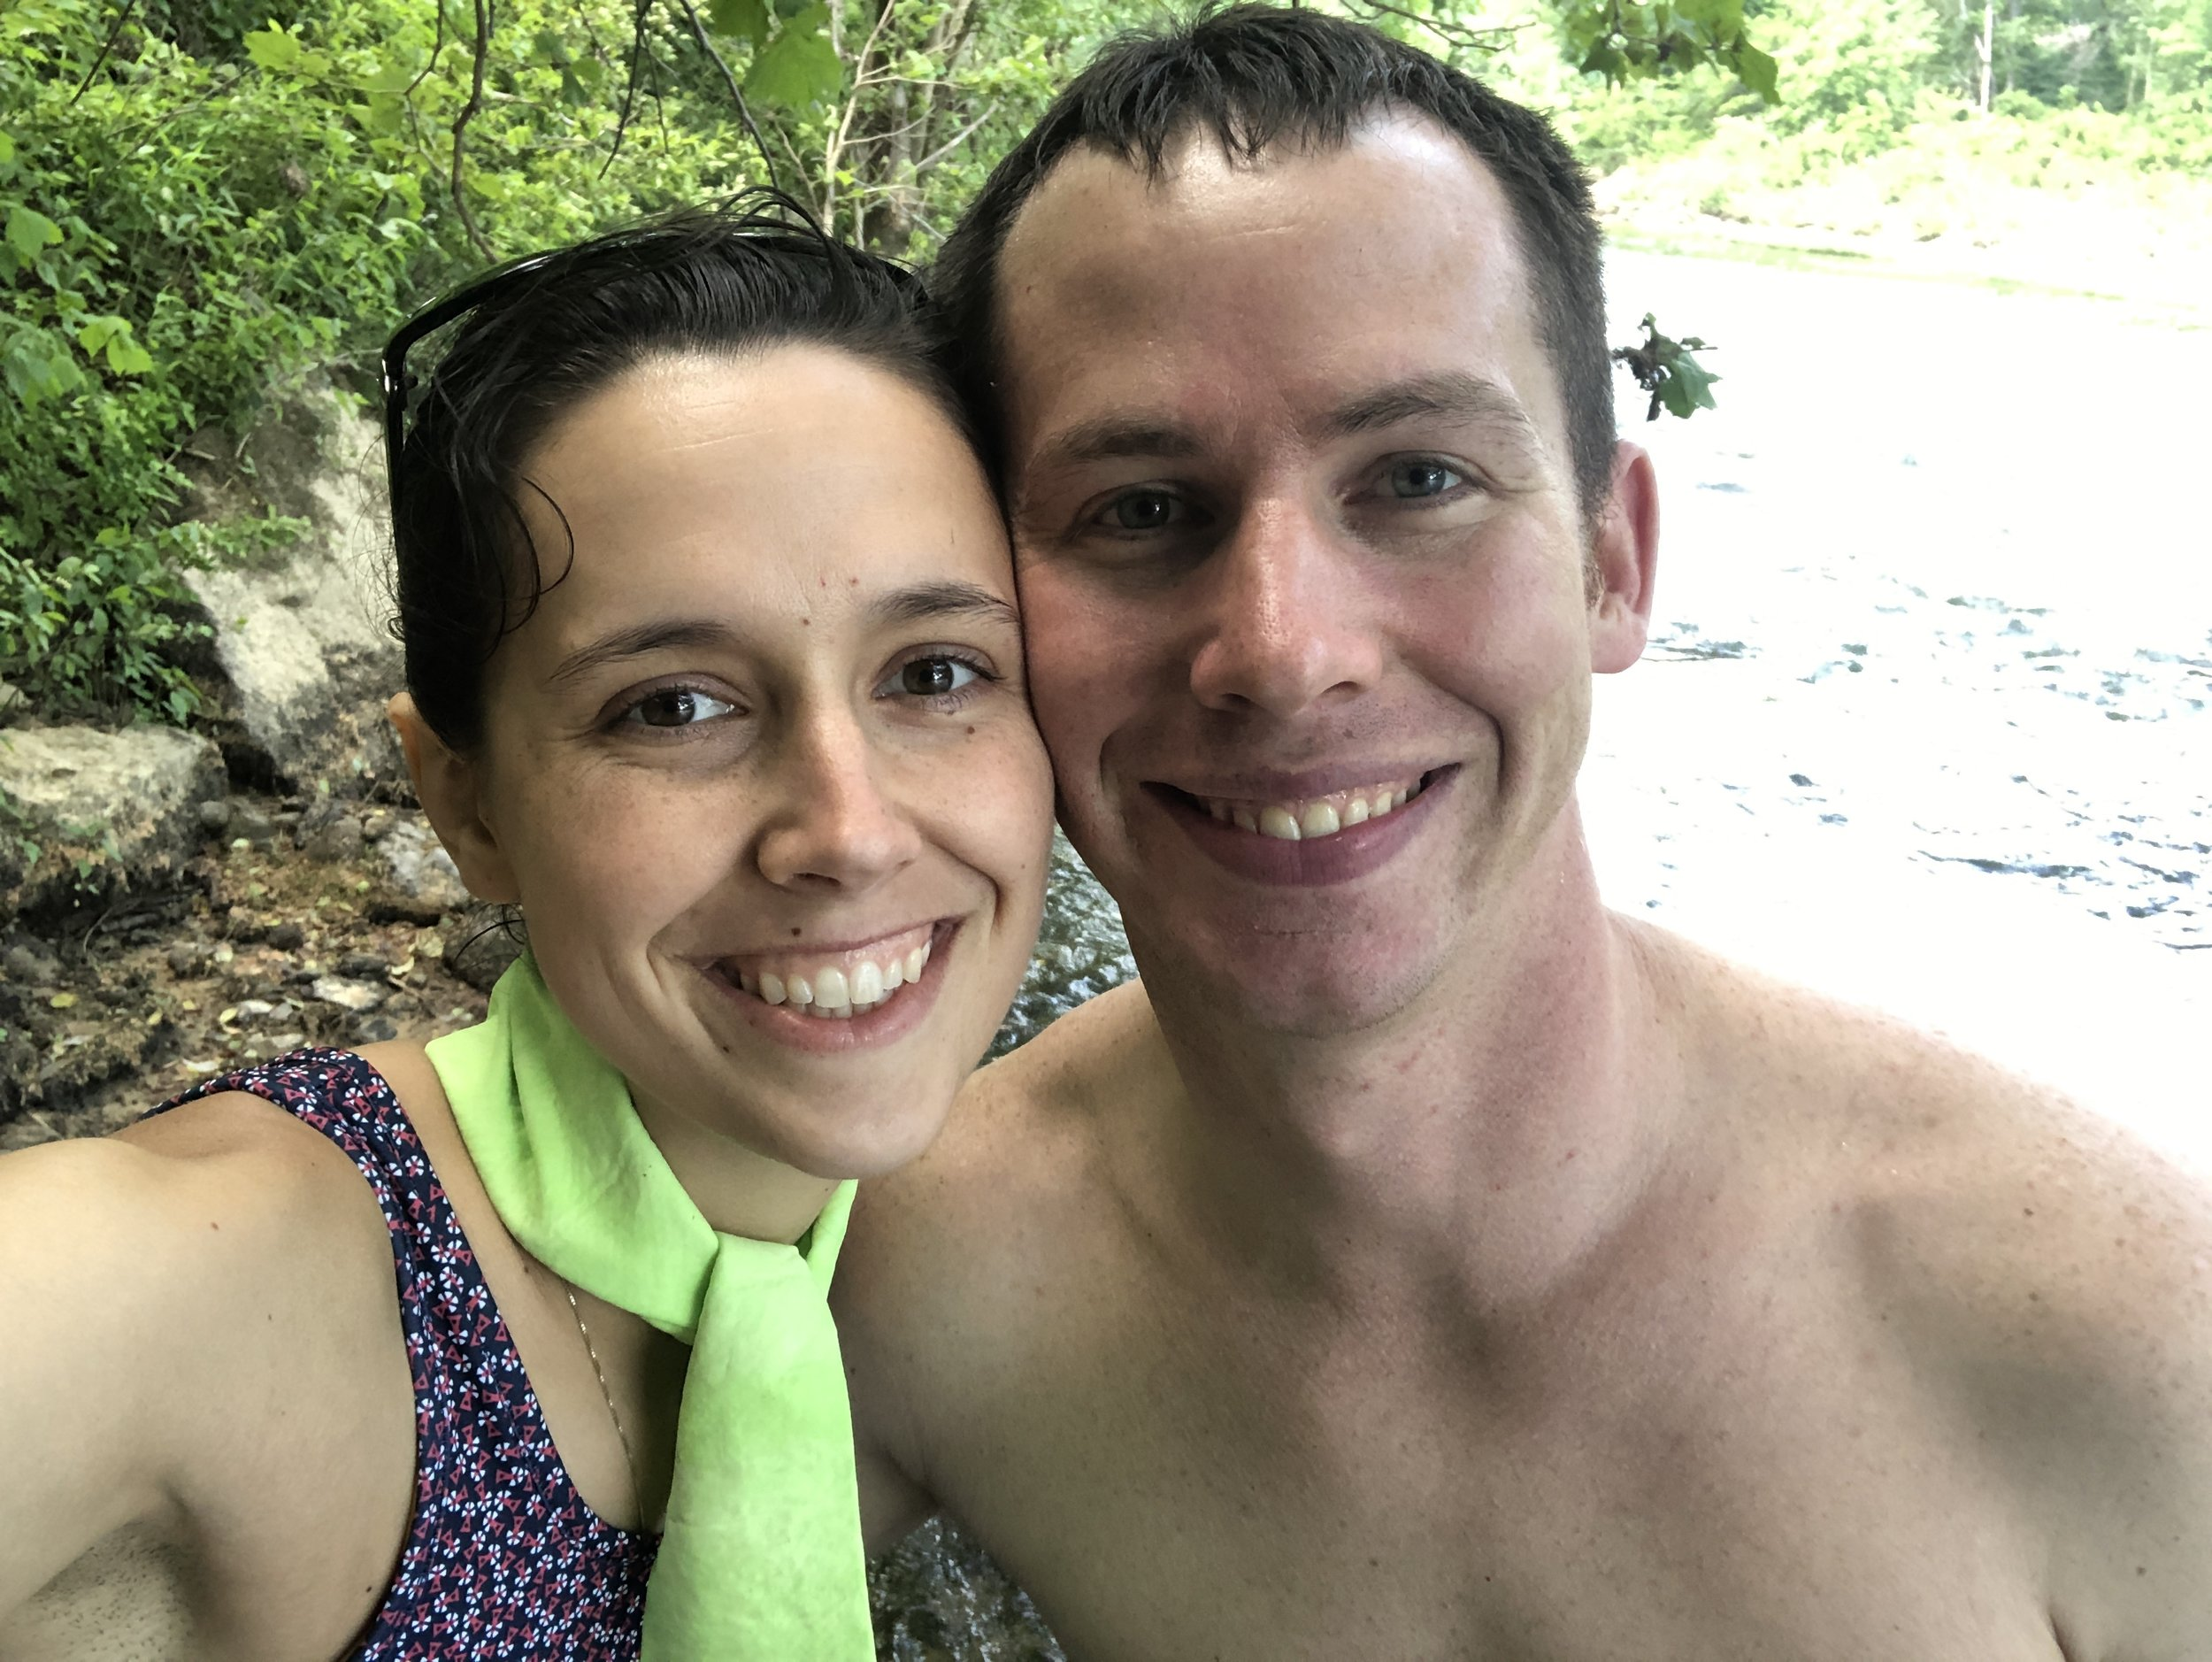 From our hike on the second day - out to the river where we enjoyed the refreshing water!